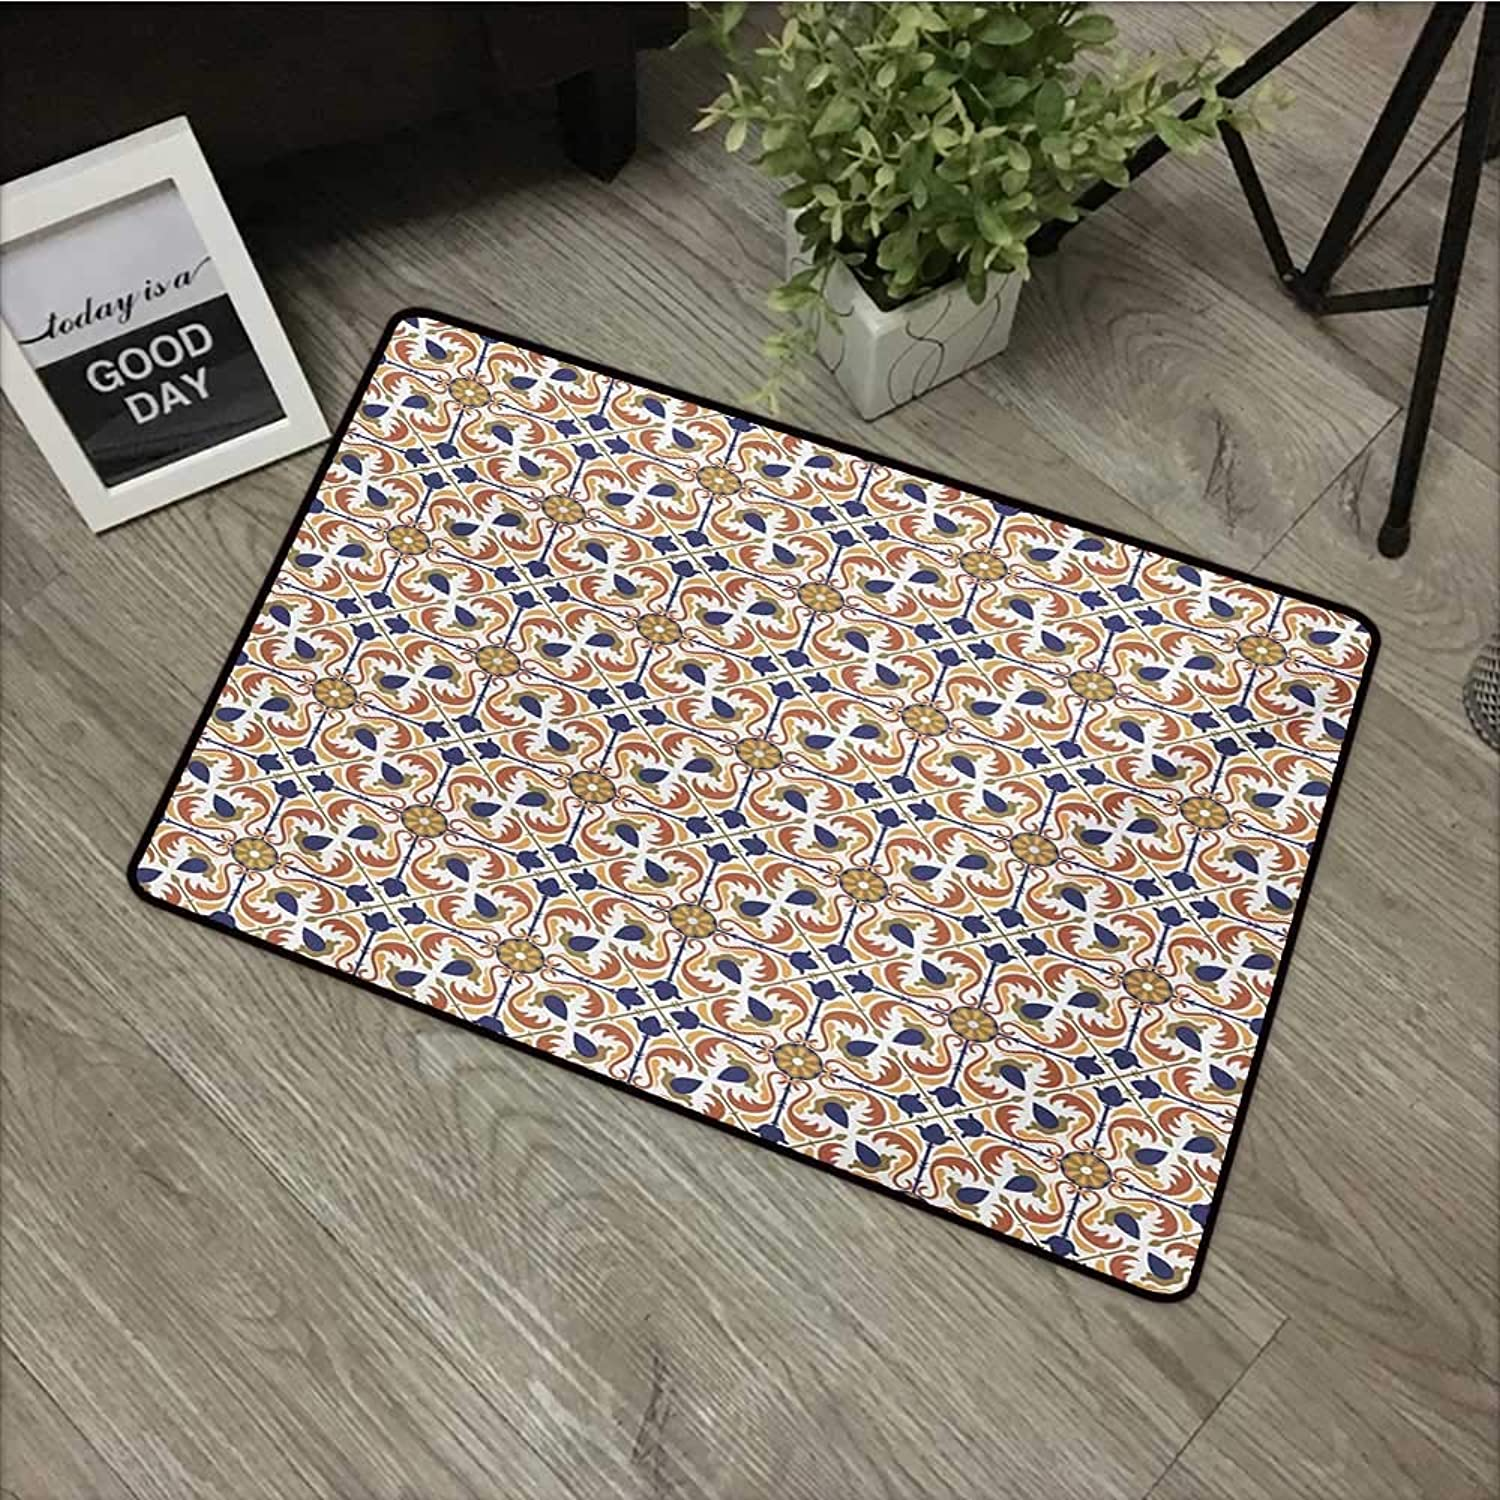 Meeting Room mat W35 x L59 INCH Mgoldccan,Traditional Mosaic Tile Motif with Old Fashioned Floral Arabesque Scroll Design,Multicolor Easy to Clean, no Deformation, no Fading Non-Slip Door Mat Carpet